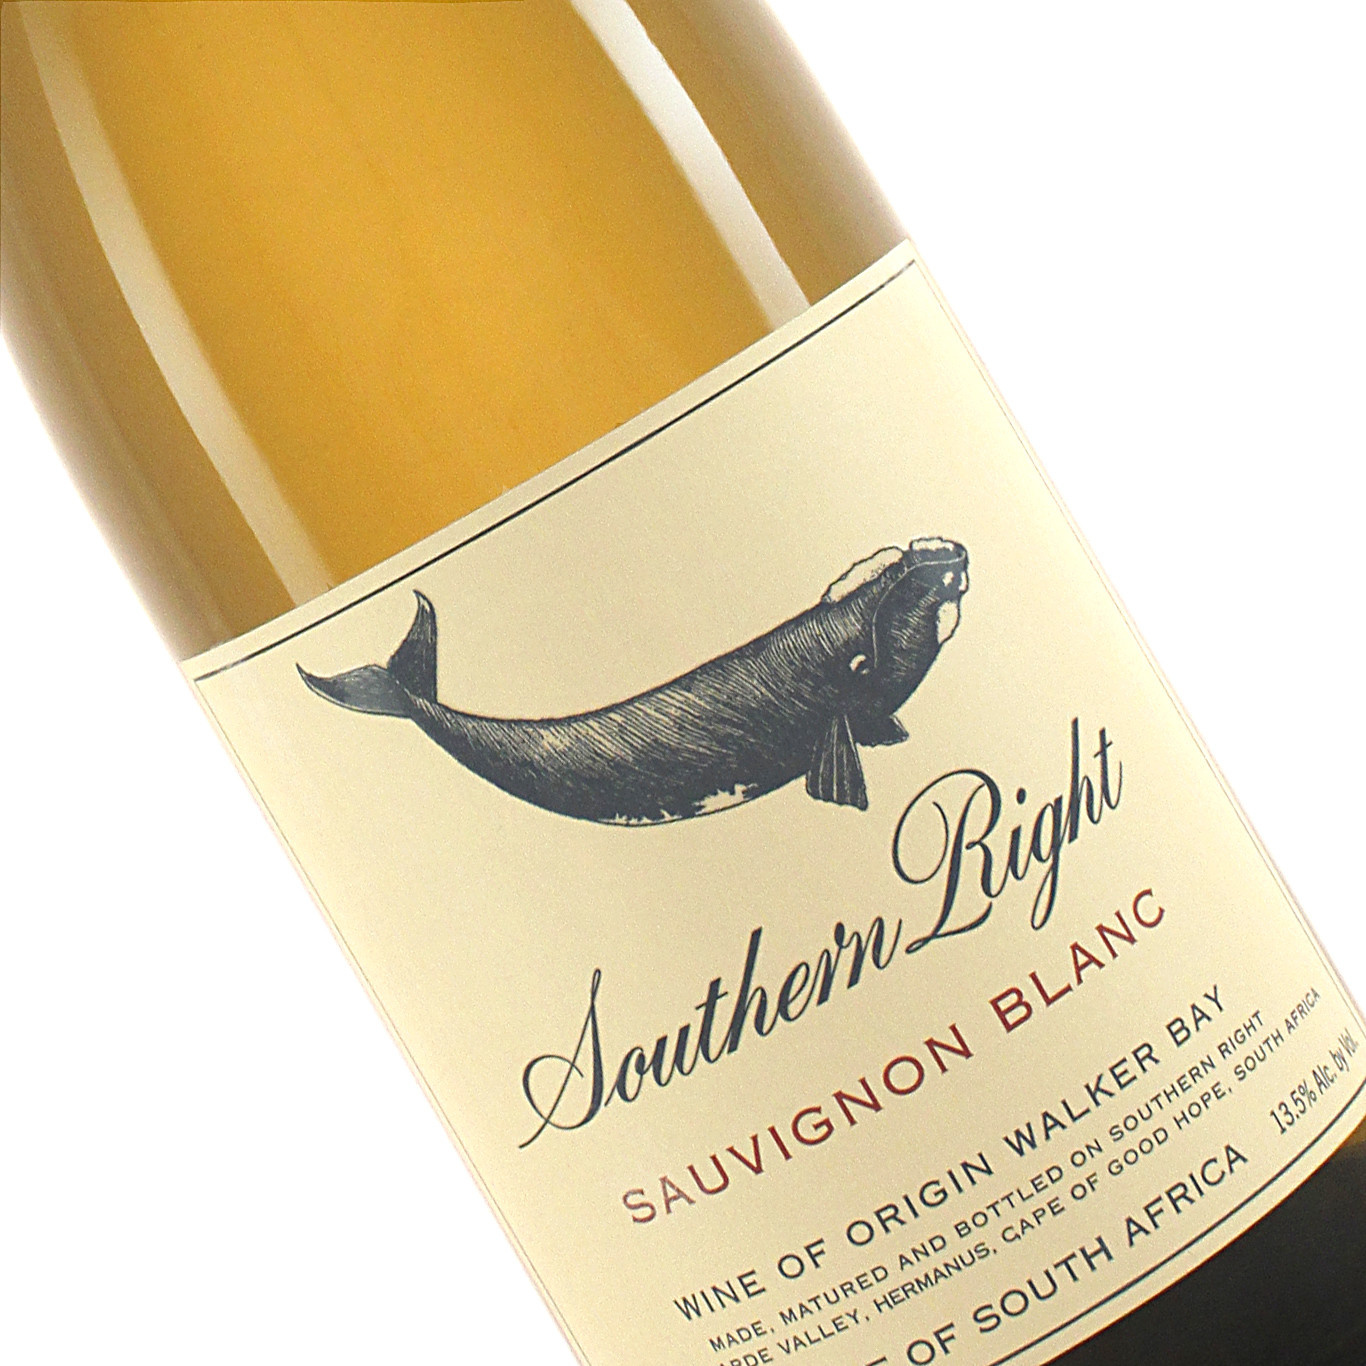 Southern Right 2019 Sauvignon Blanc, South Africa